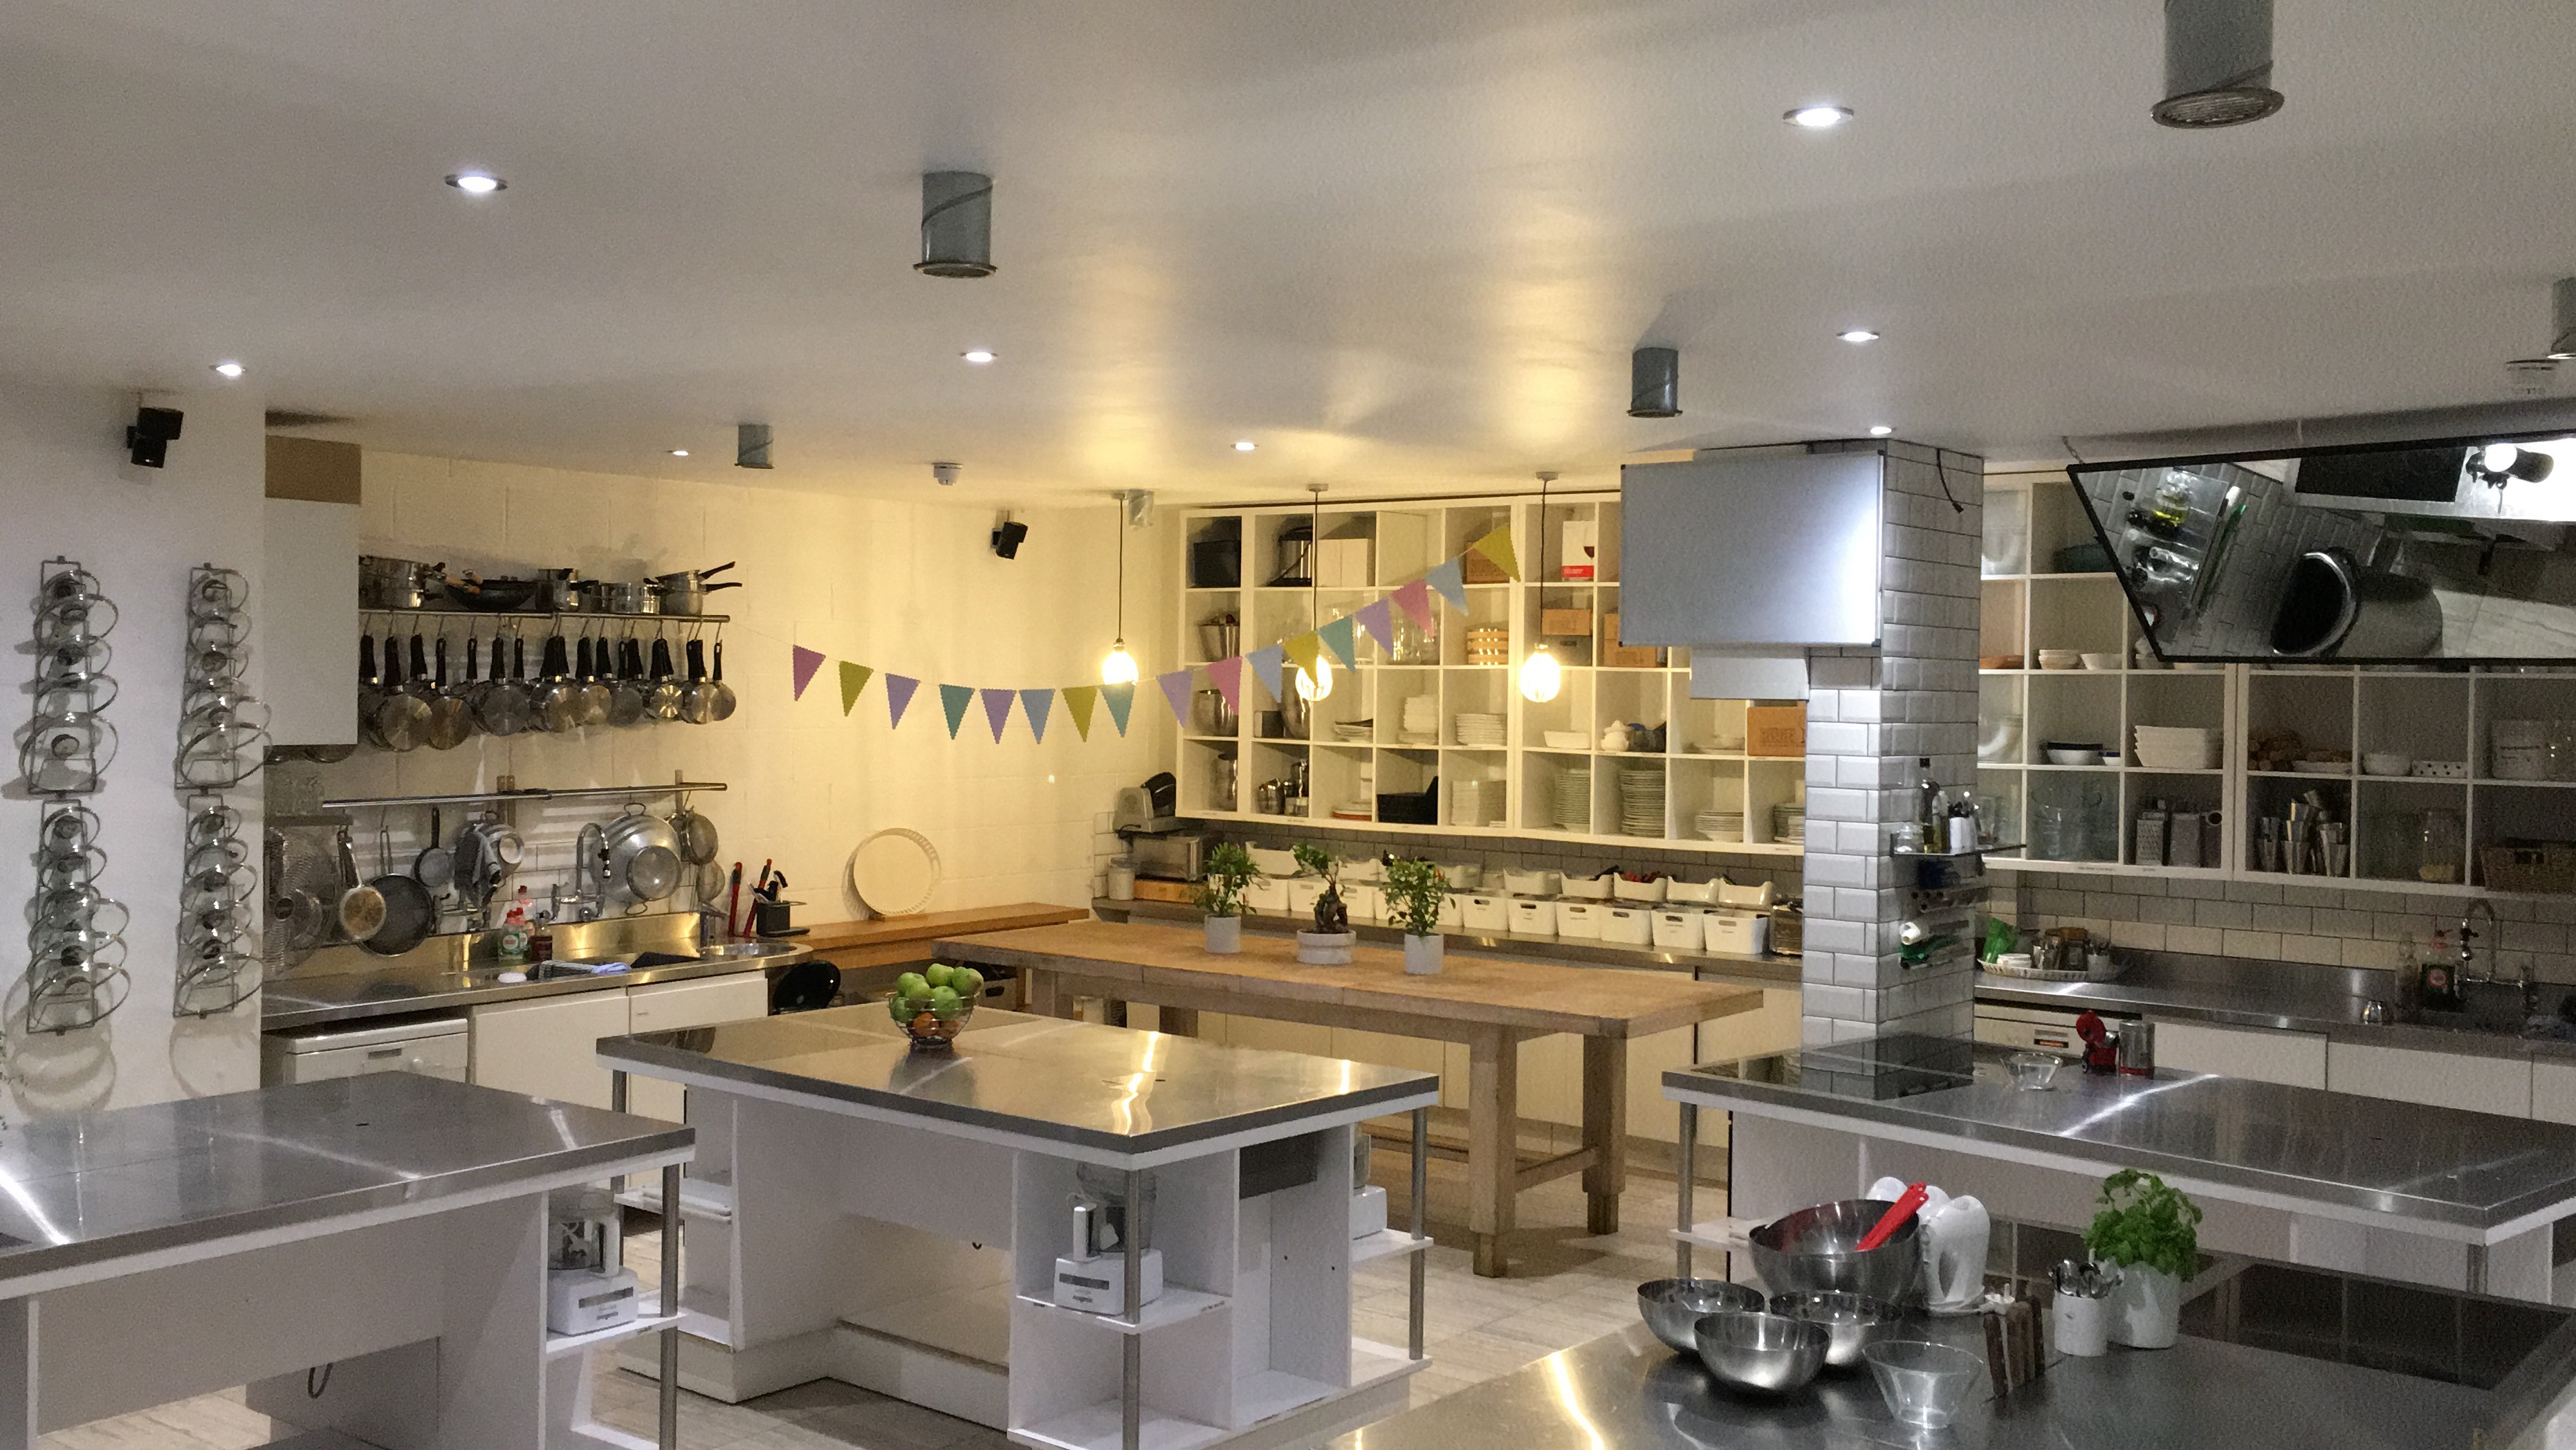 Intermediate Cooking Course by The Avenue Cookery School - food in London